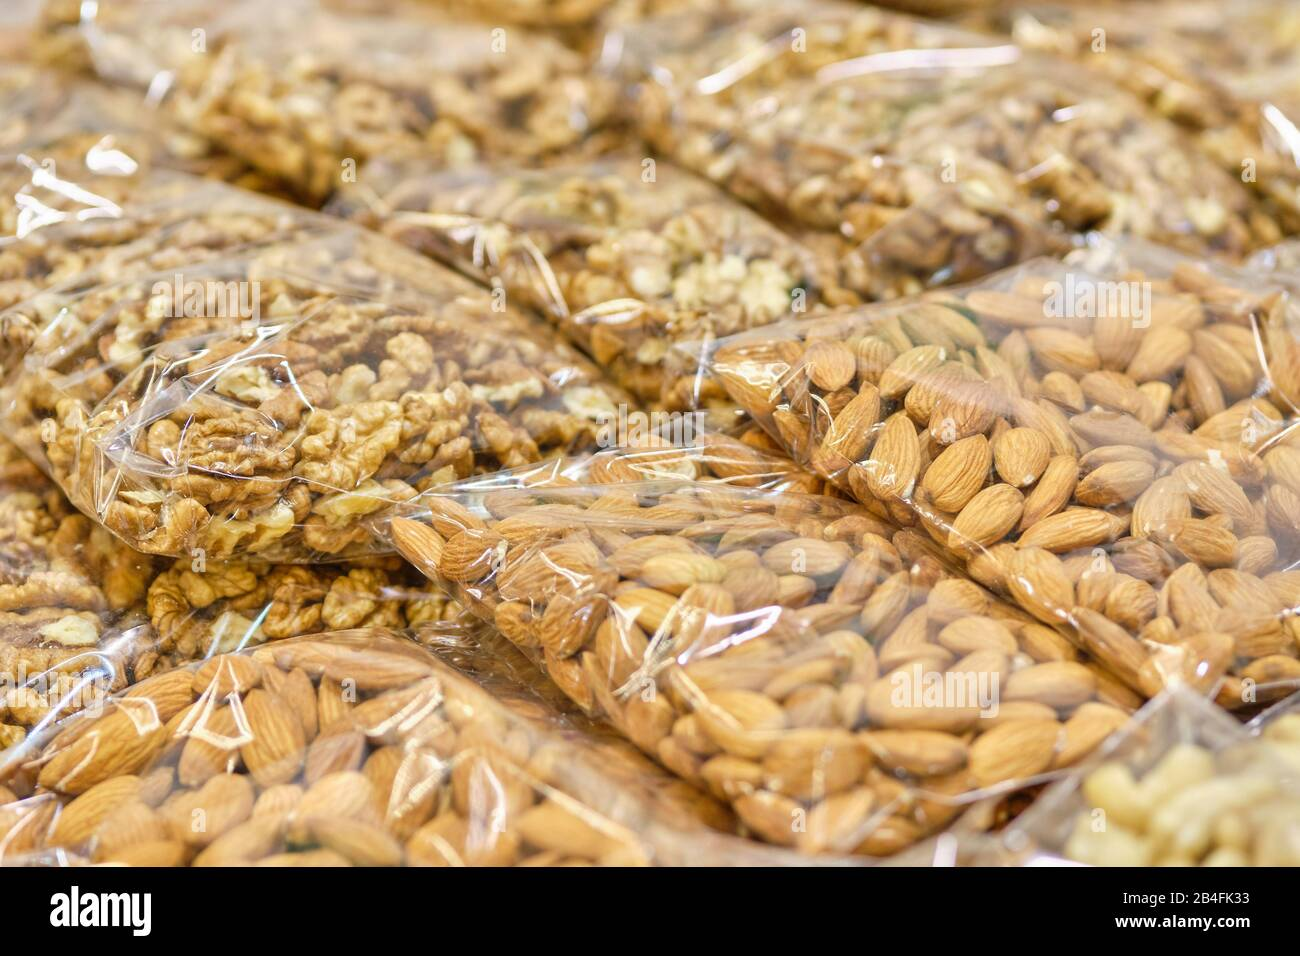 Packaging from a transparent bag with almonds and walnuts. Close up. Stock Photo